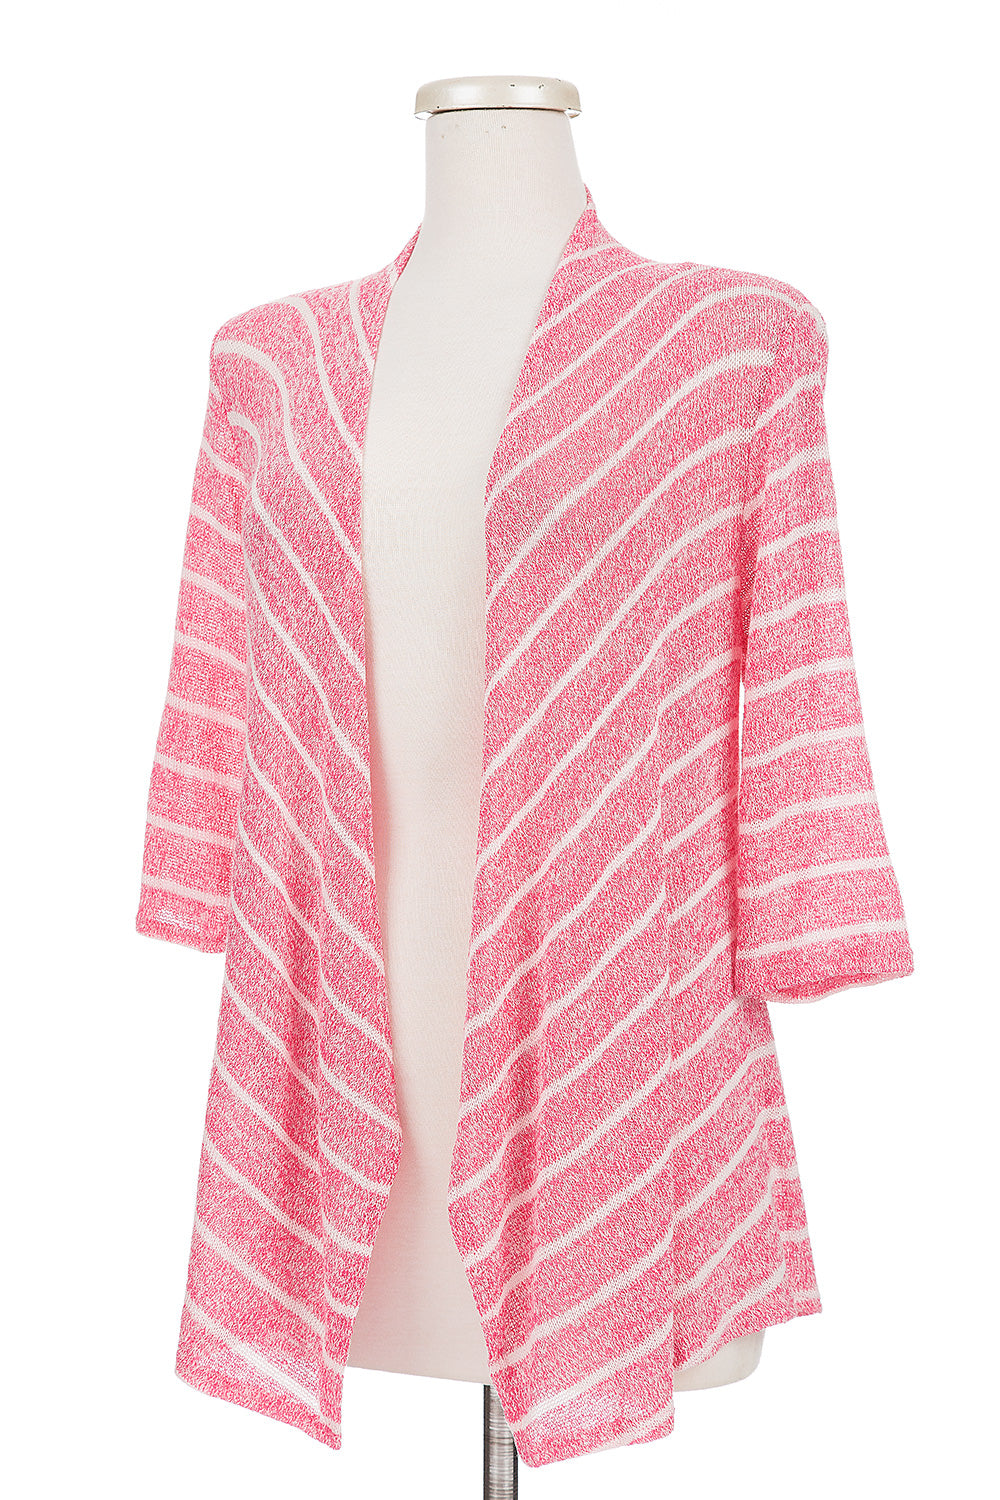 Type 1 Candy Stripes Cardigan